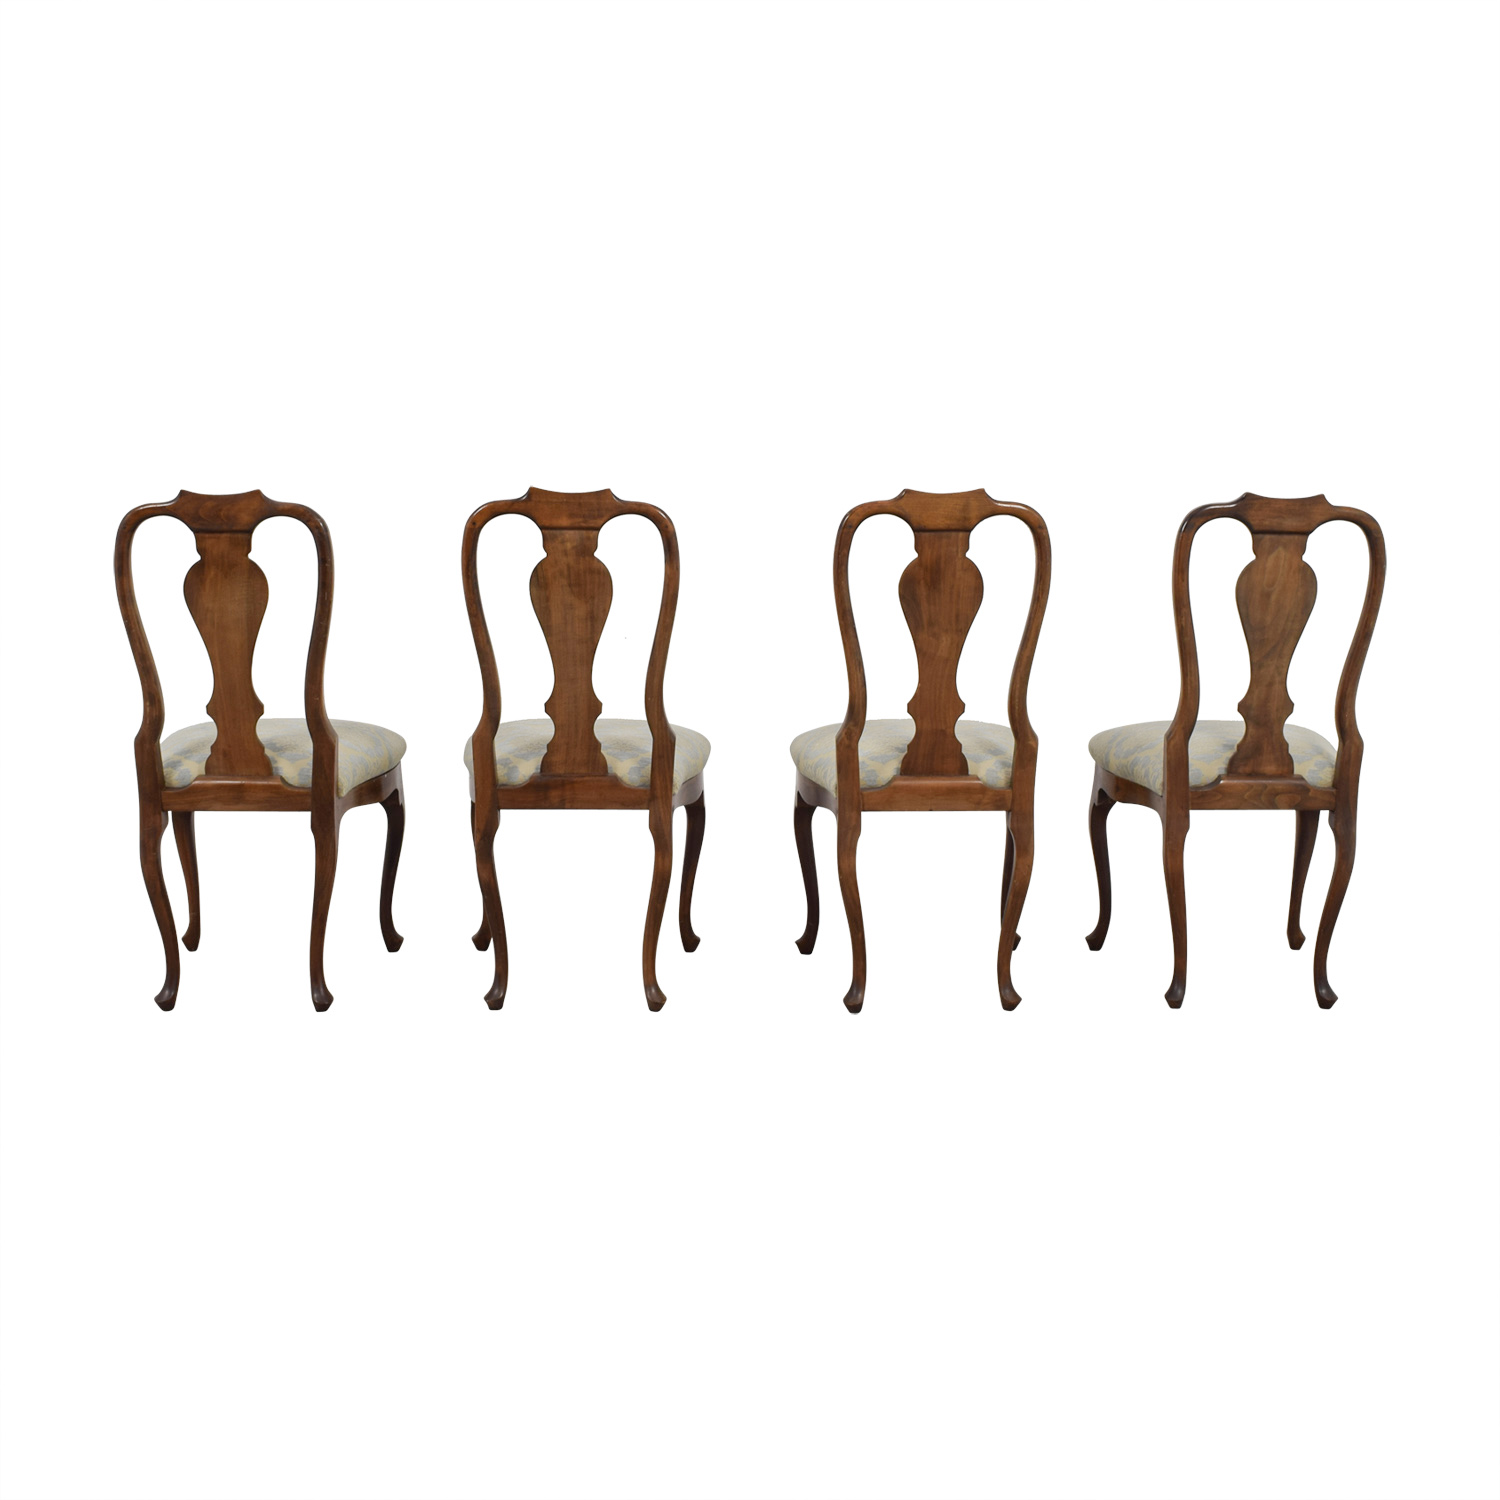 Antique Beige and Grey Hardwood Dining Chairs nyc